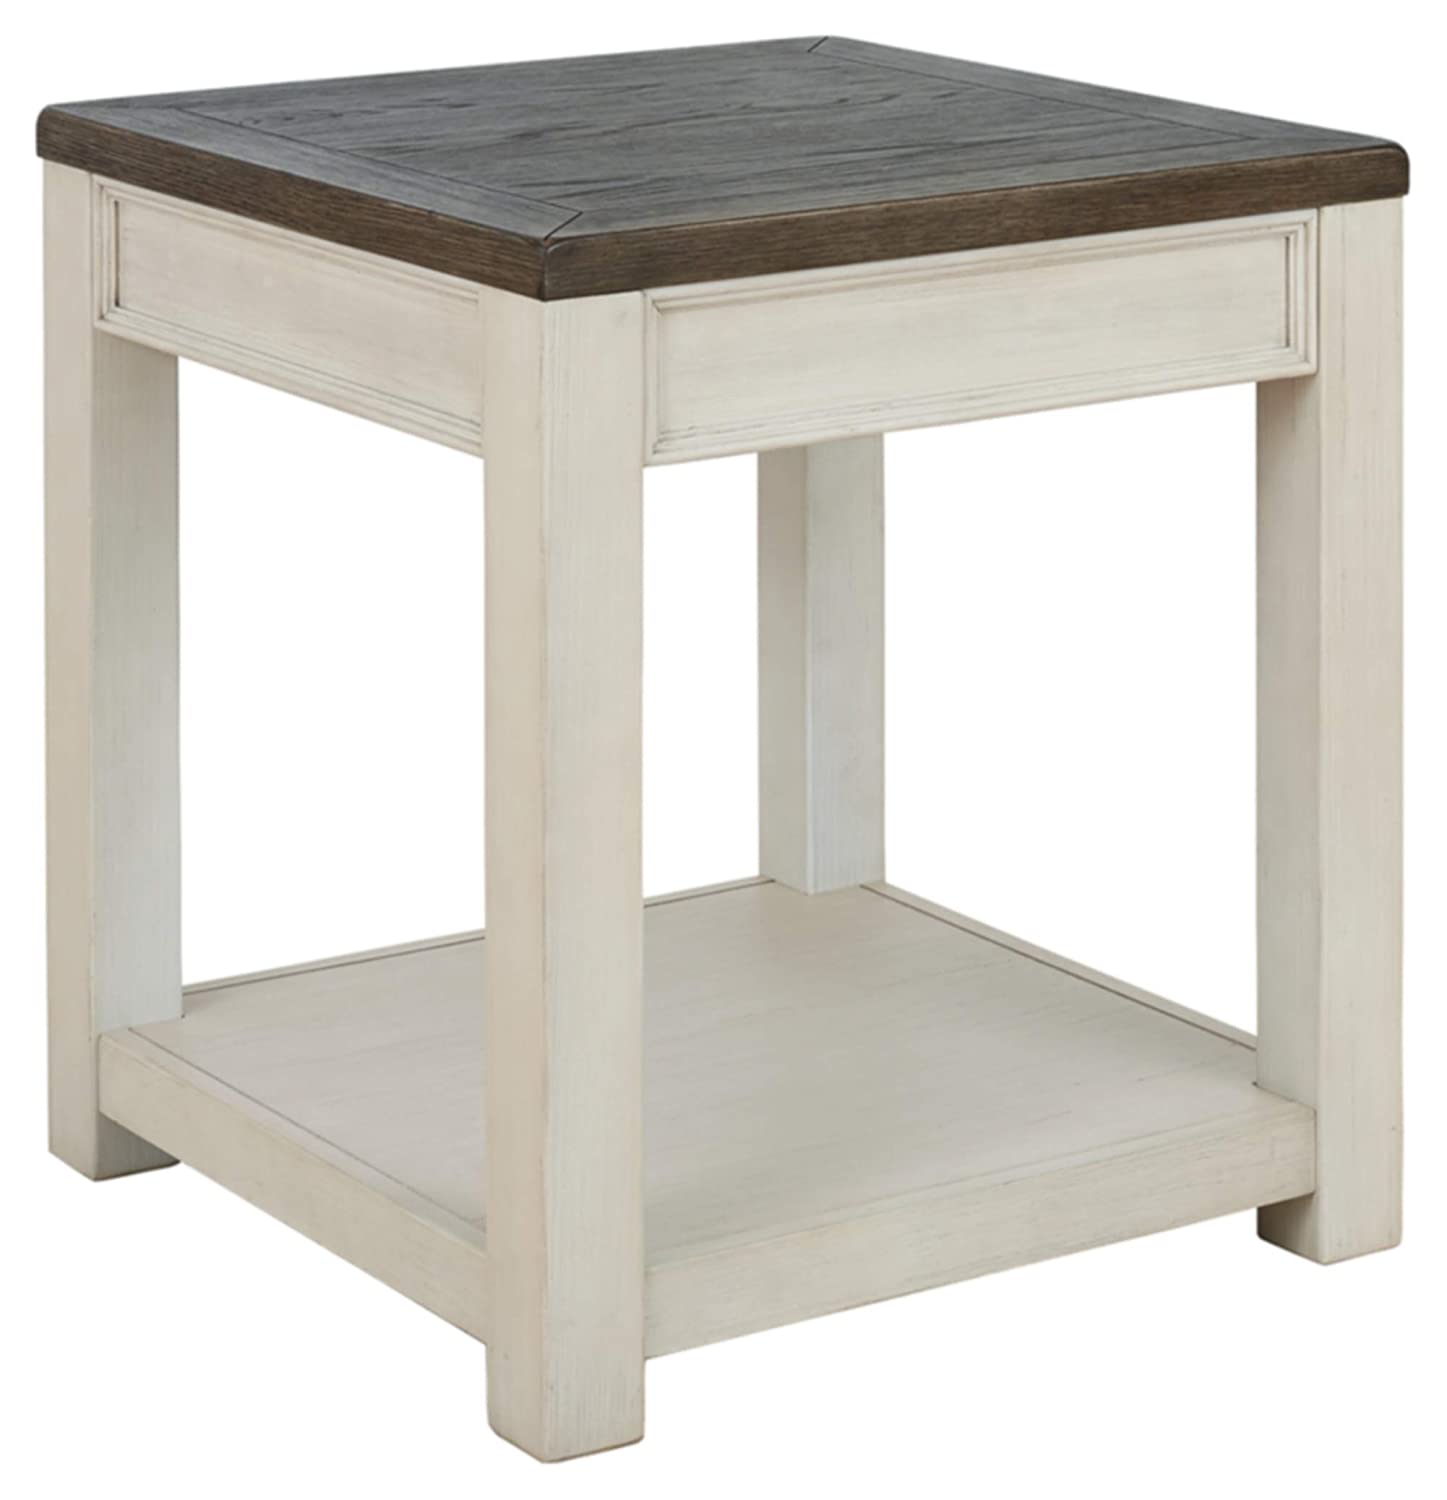 Signature Design by Ashley Bolanburg END TABLE, Brown/White